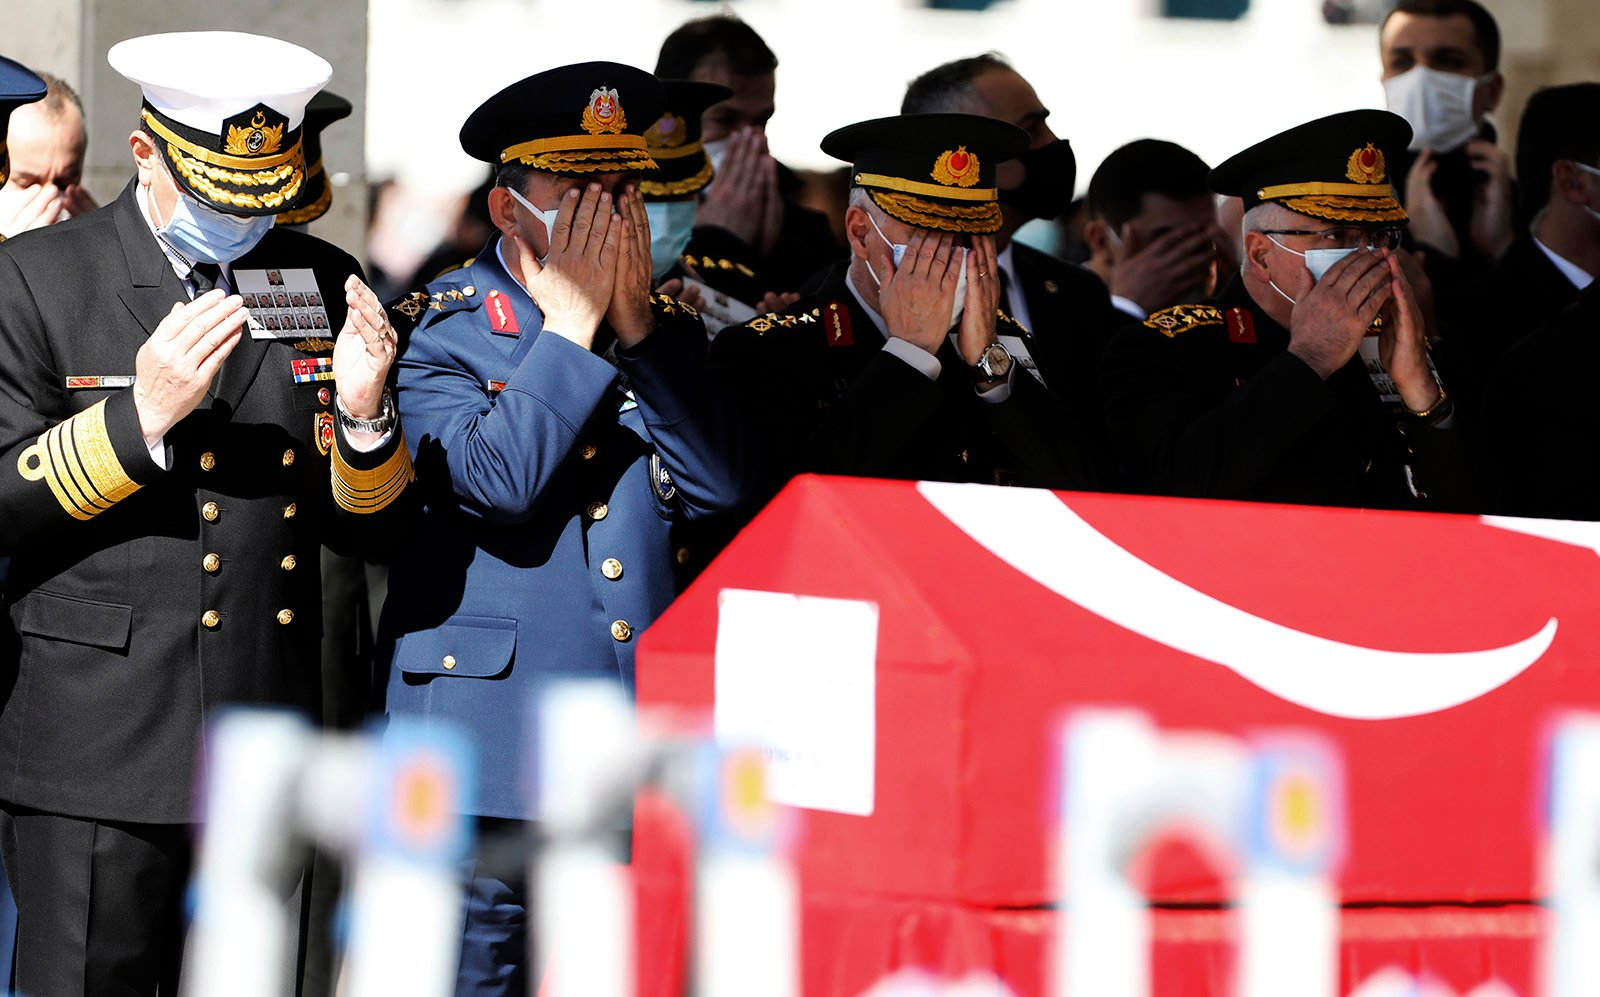 Turkish army commanders pray as Turkish leaders, army commanders, family members and colleagues attend funeral prayers and a ceremony for 11 military personnel, including a high-ranking officer, at Ahmet Hamdi Akseki Mosque, in Ankara, Turkey, Friday, March 5, 2021. Turkish army officers were killed on Thursday when an army helicopter crashed in a snow-covered mountainous area in Bitlis, eastern Turkey. (AP Photo/Burhan Ozbilici)